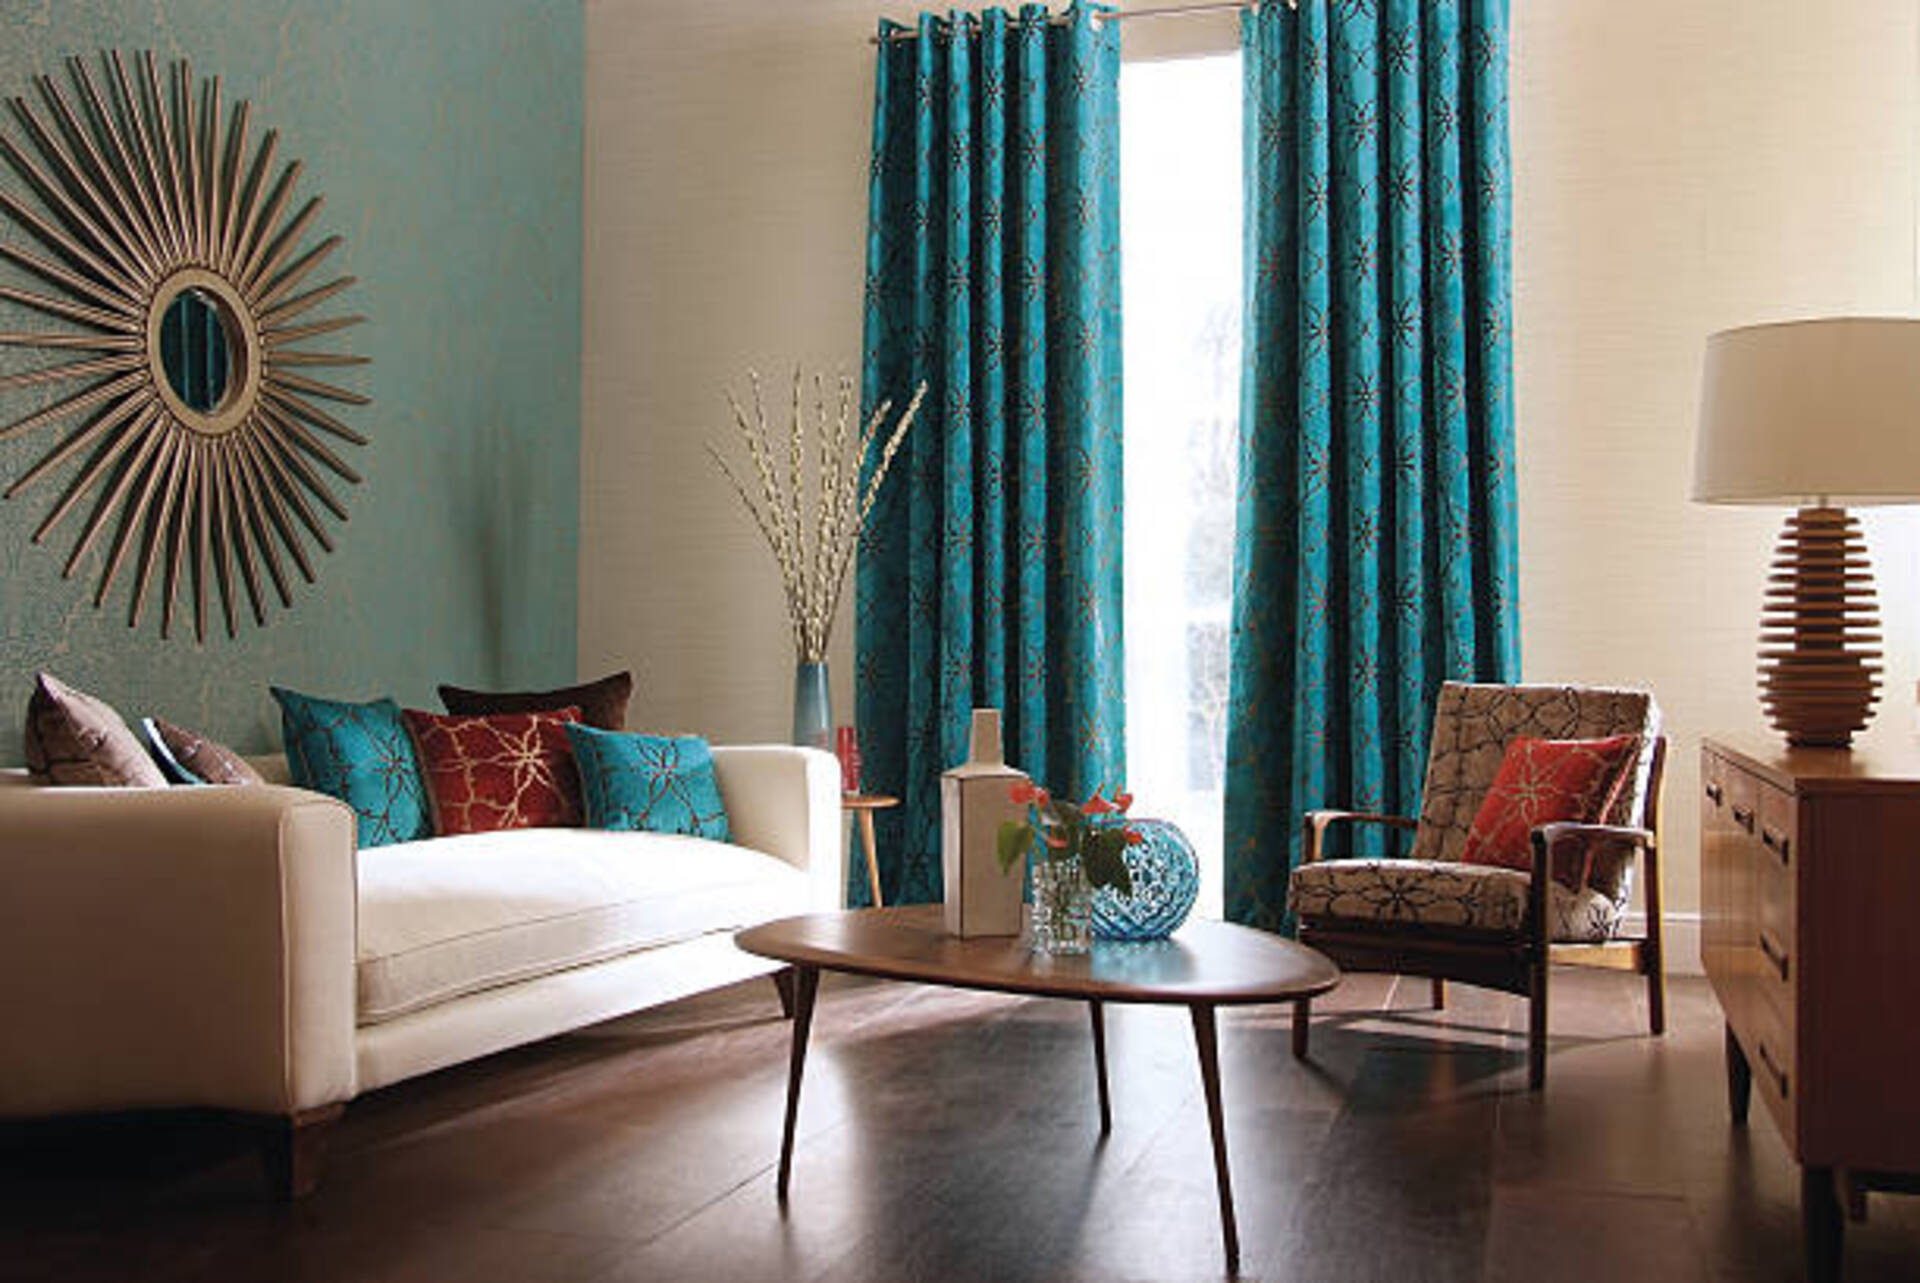 A Handy Guide to Why Window Curtains Are Important